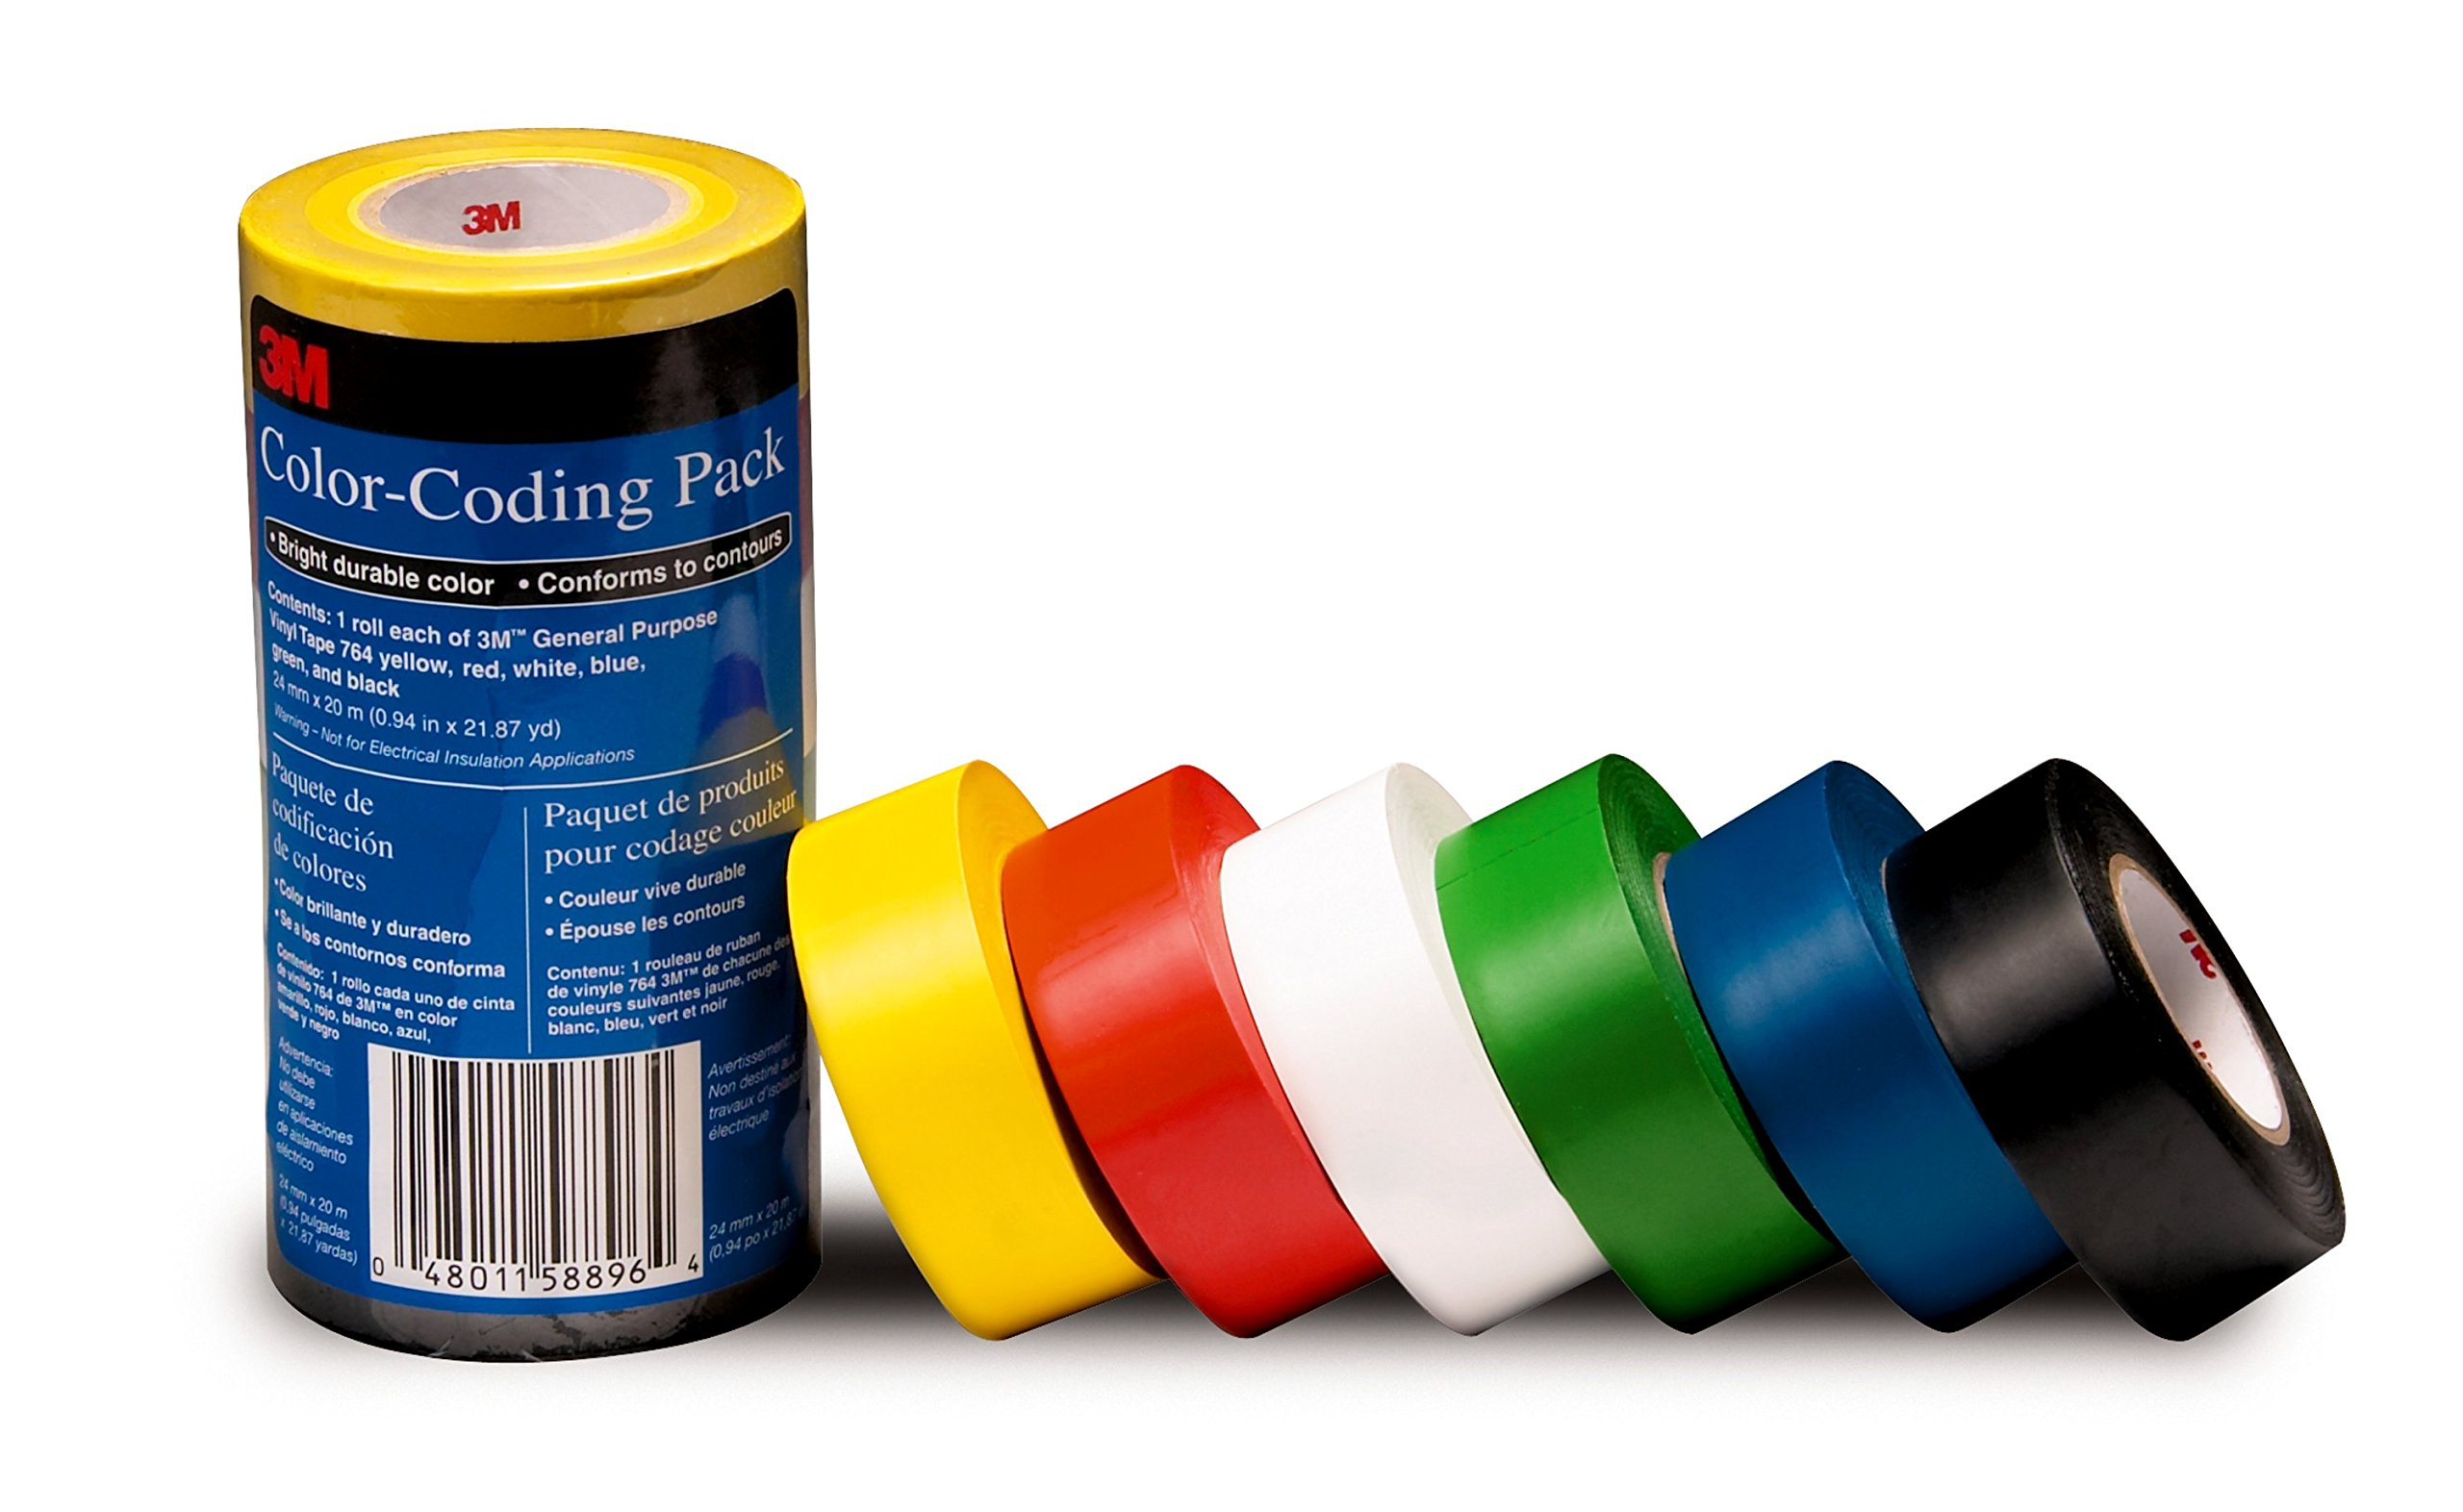 3M General Purpose Vinyl Tape Color Coding Pack, 6-Roll by 3M (Image #1)